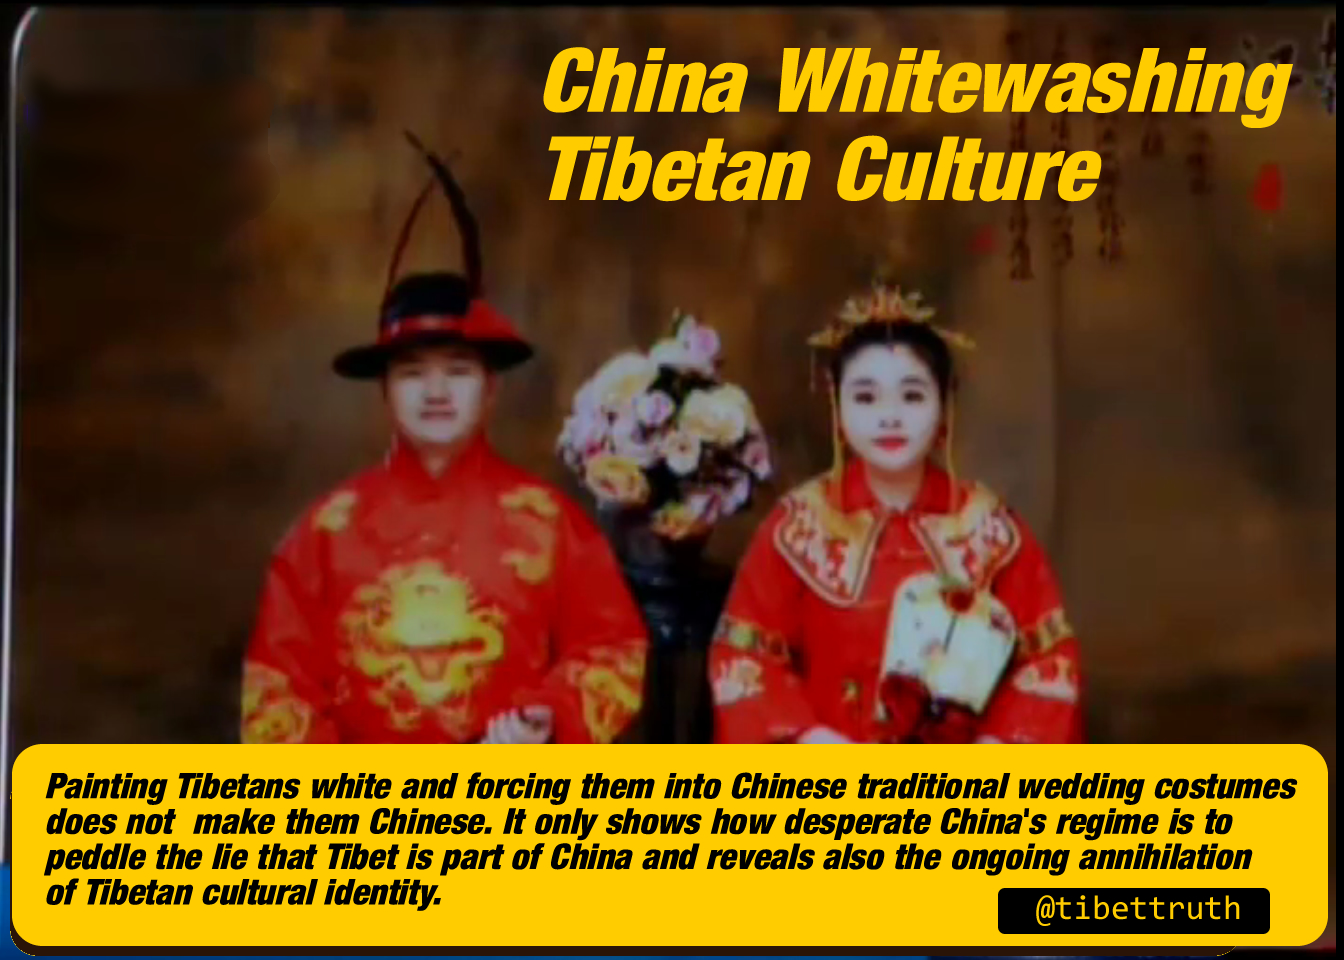 China Whitewashing Tibetan Culture